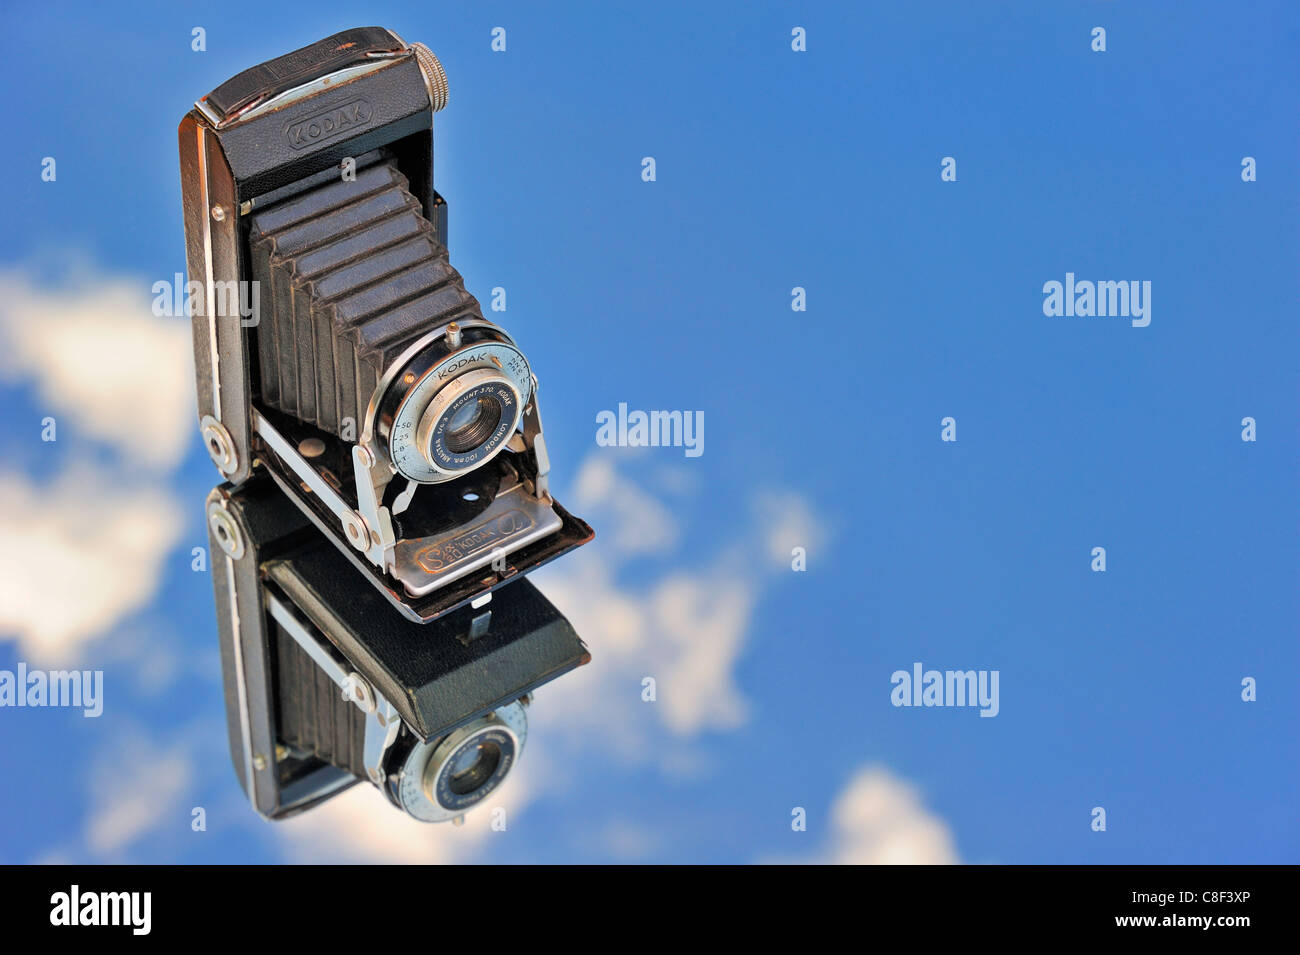 An old bellows camera reflected against the sky. Space for text in the sky. - Stock Image